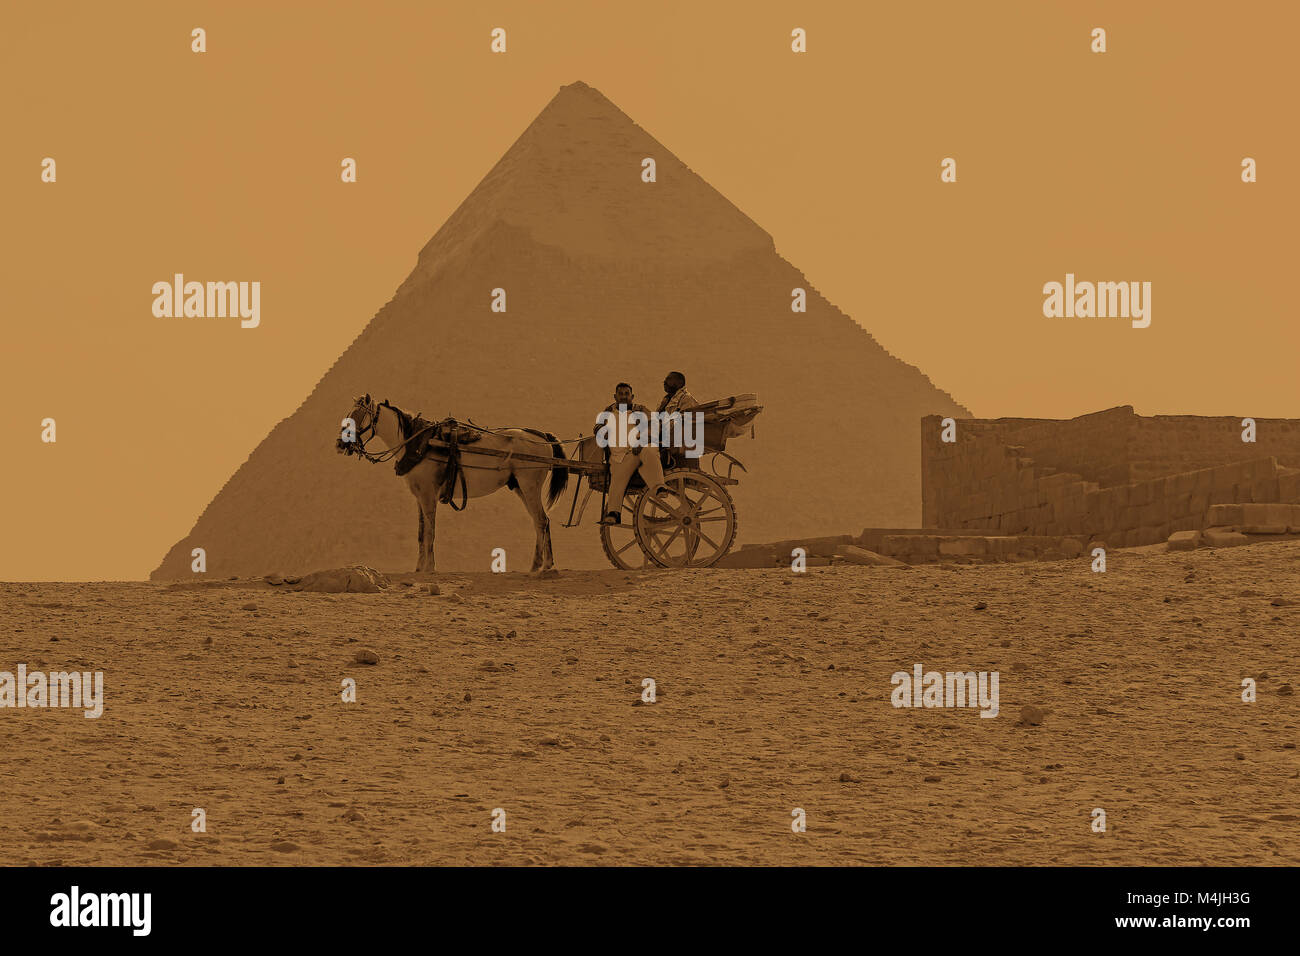 A horse and cart in front of the The Great Pyramid of Giza or the Pyramid of Khufu, Pyramids, Giza, Egypt, North - Stock Image